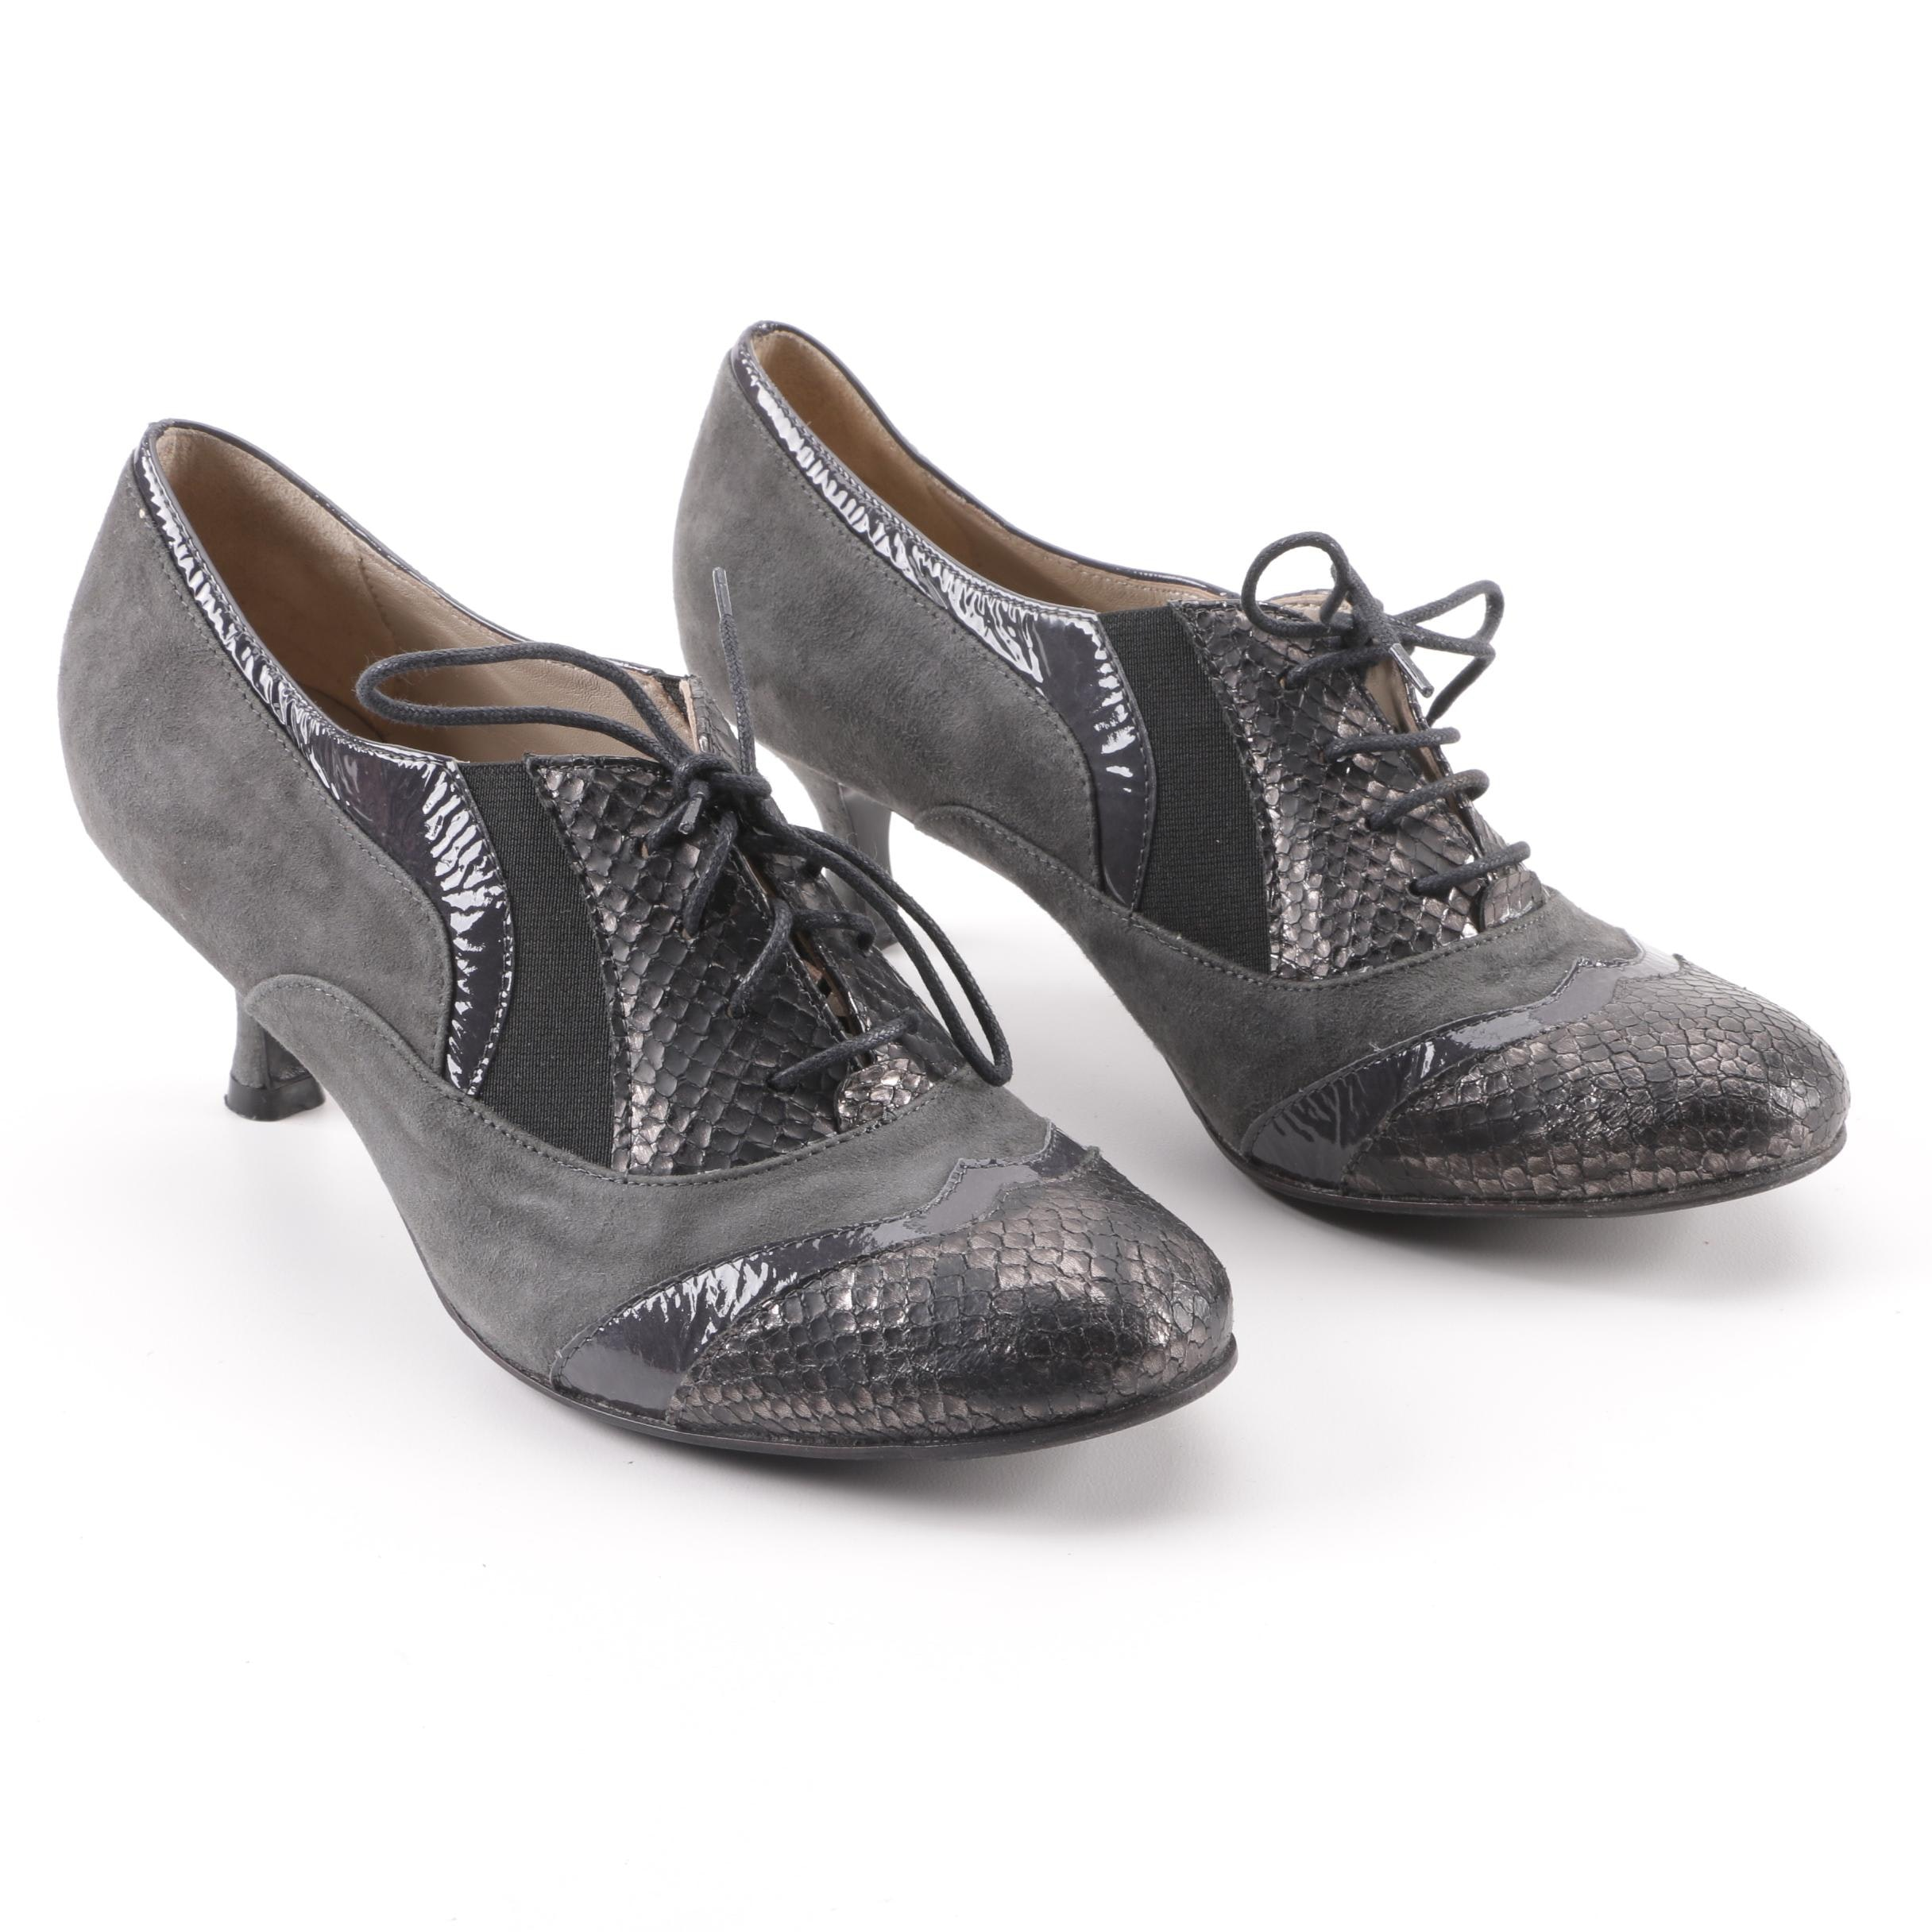 Bettina Grey Snakeskin, Suede and Leather Oxford Heels, Made in Italy